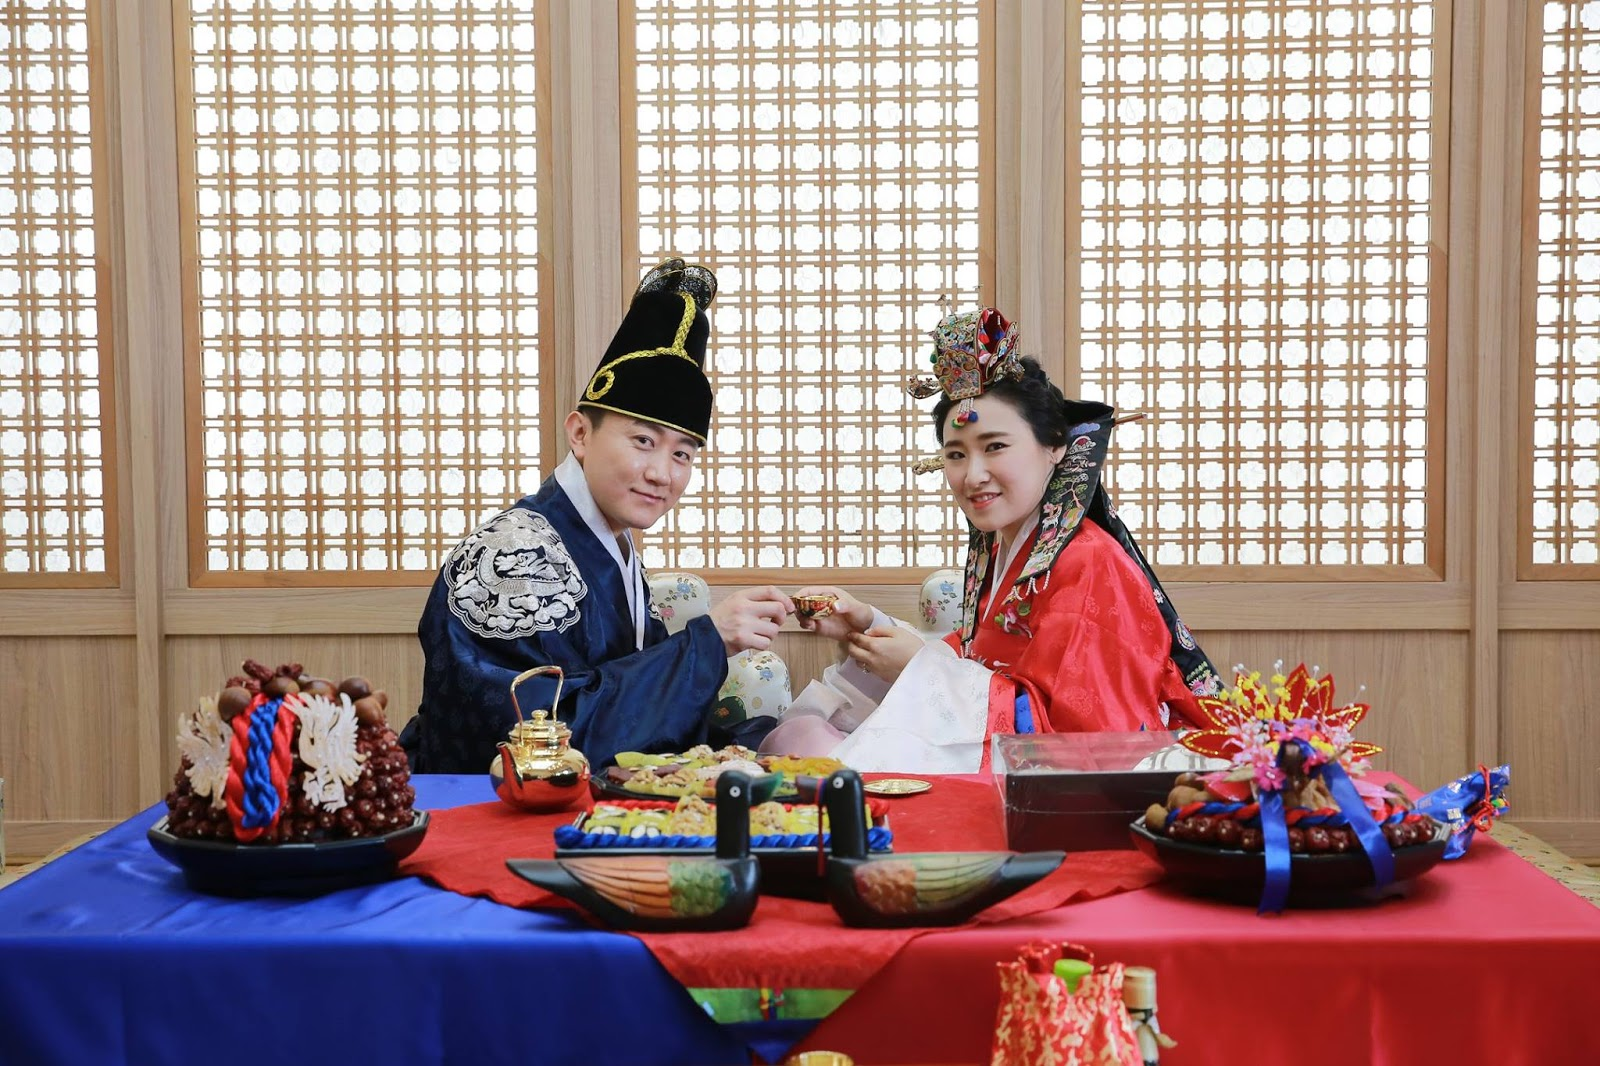 A Traditional Korean Wedding Ceremony Can Be Still Seen In Some Modern Weddings These Days